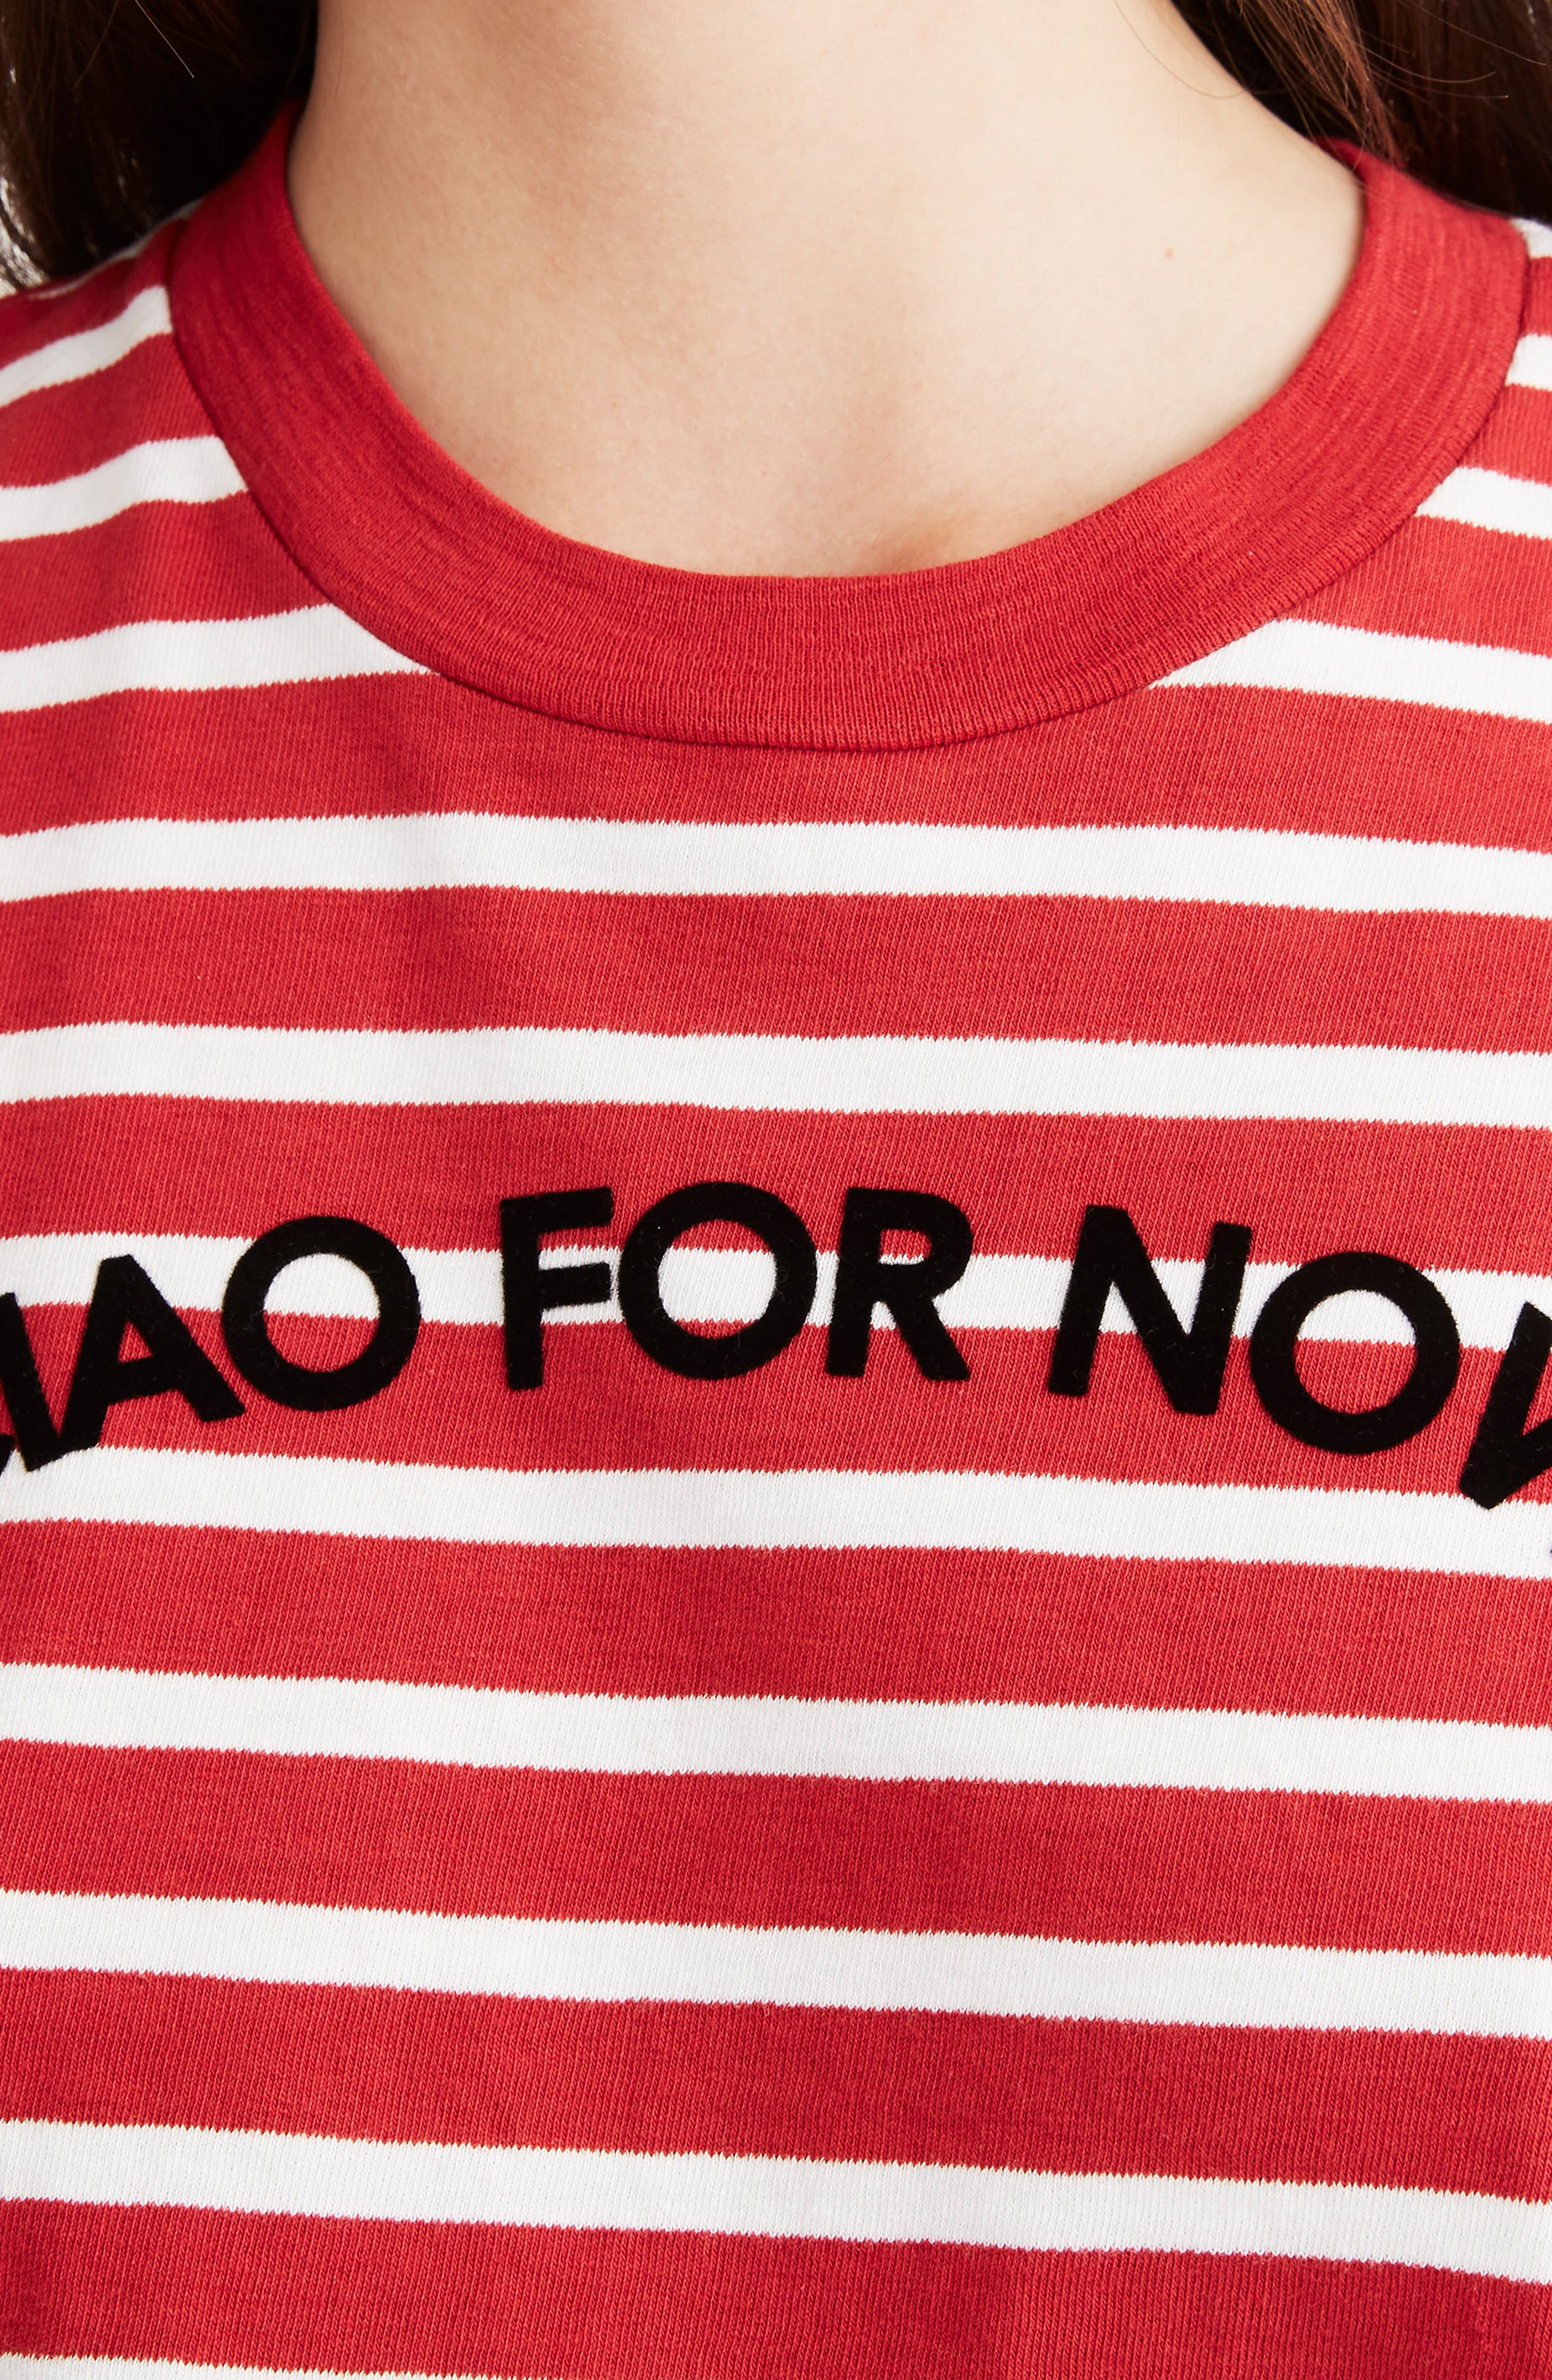 MADEWELL,                             Stripe Ciao for Now Tee,                             Alternate thumbnail 4, color,                             600